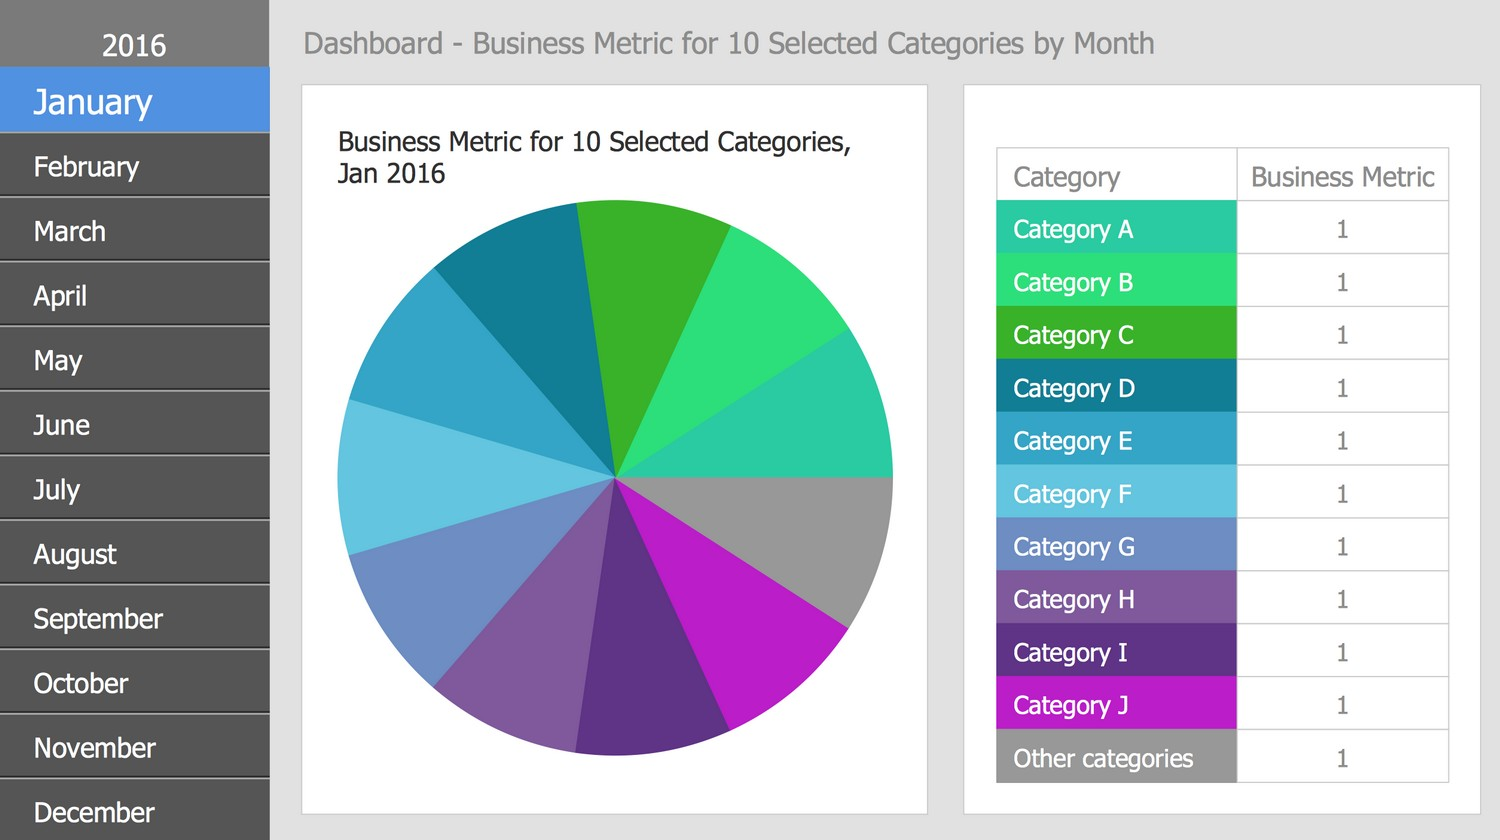 Business Metric for 10 Selected Categories by Month, 2016